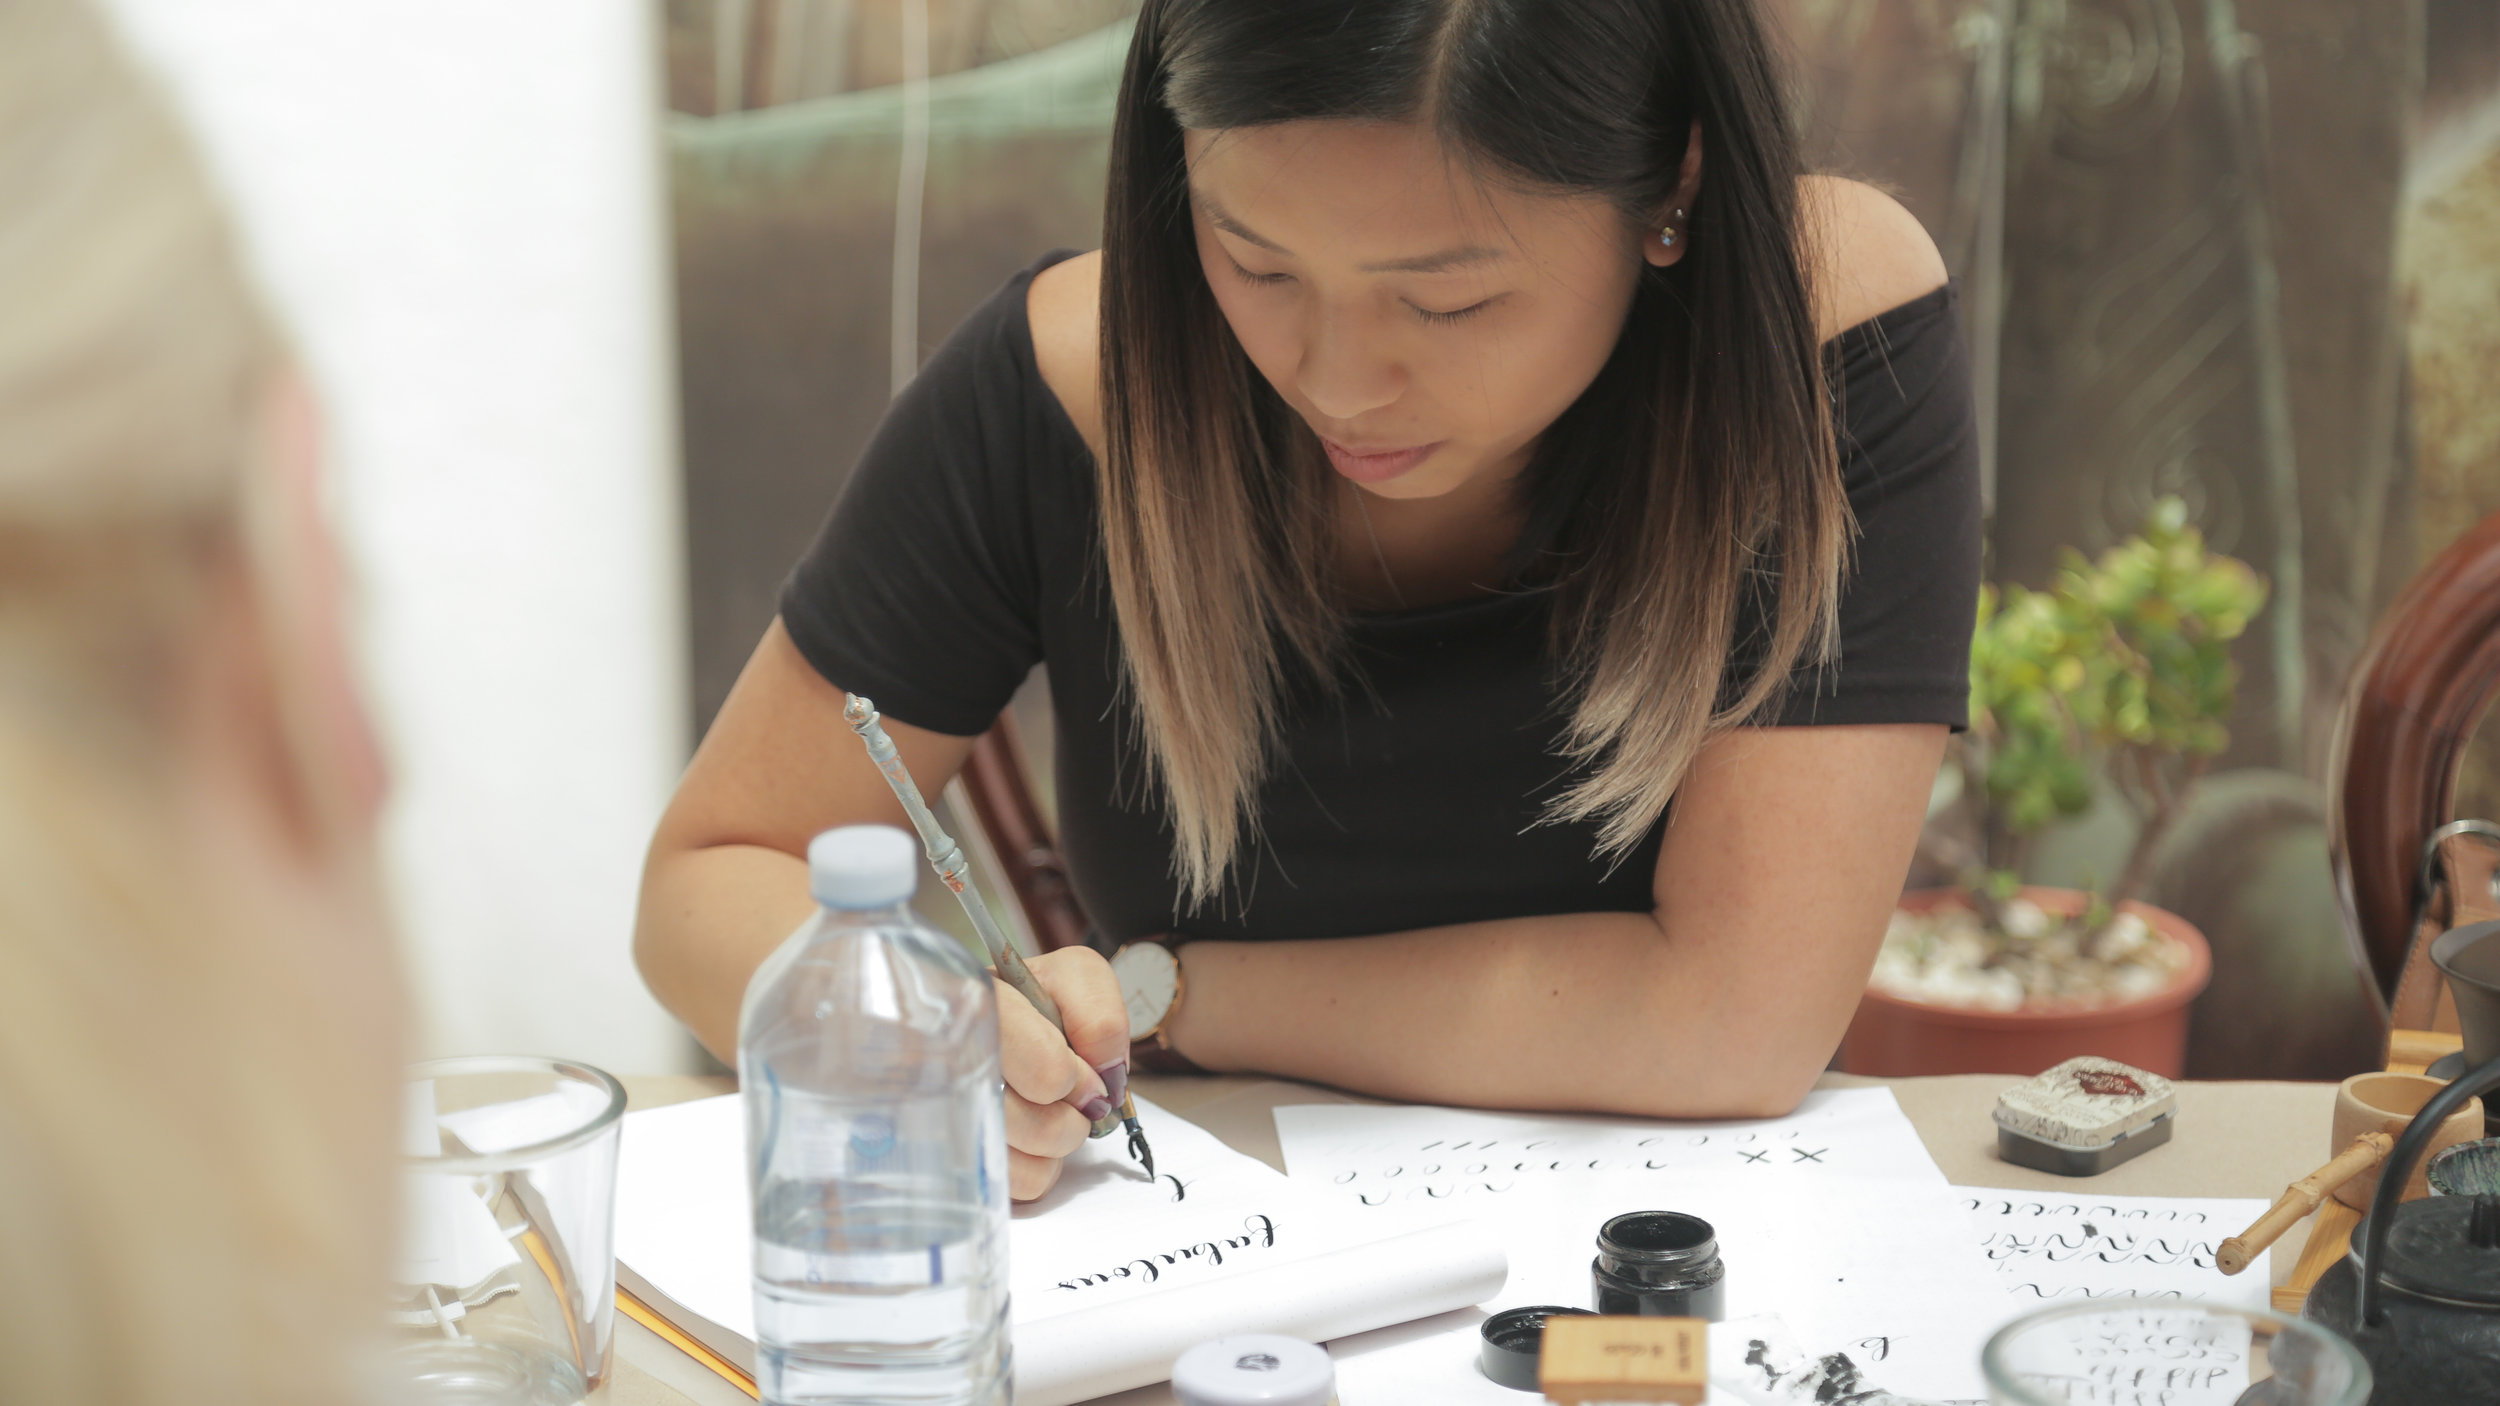 - The Modern Calligraphy Queen, Kim Tran-Flores talks about being mindful, making time for yourself, being a mother and always coming back to your passions.